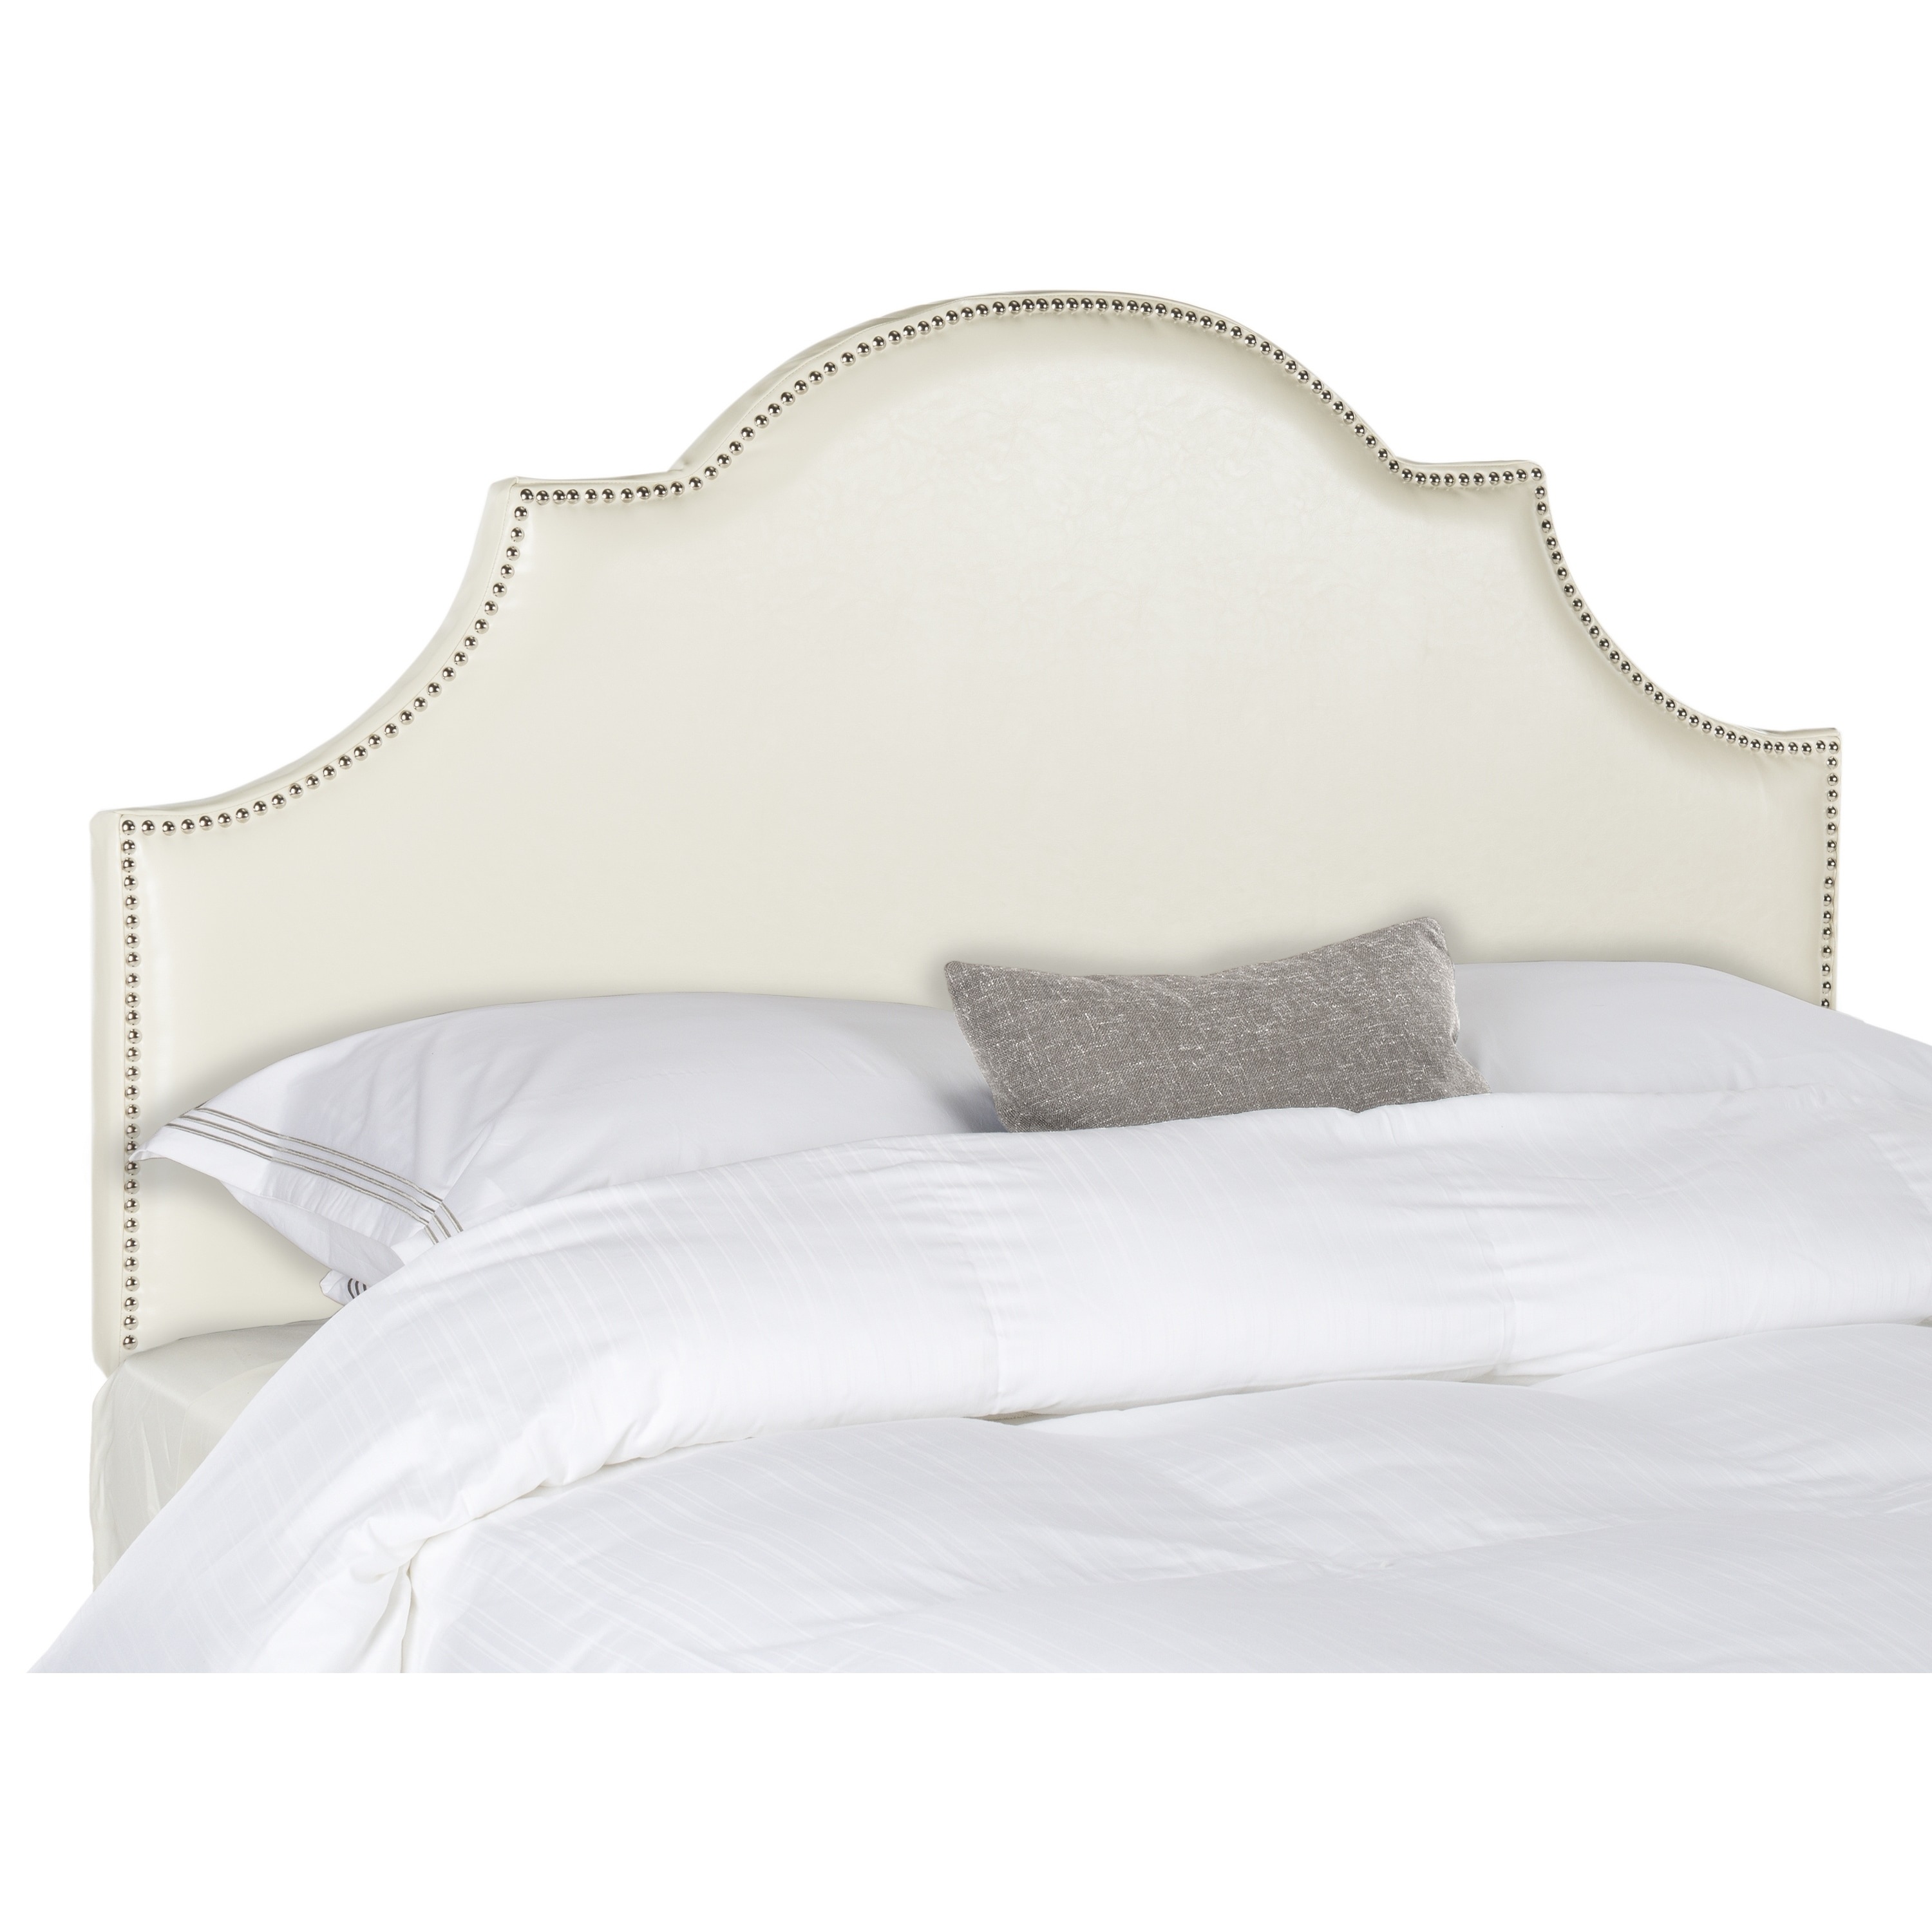 safavieh hallmar white leather upholstered arched headboard  silvernailhead (queen)  free shipping today  overstockcom  . safavieh hallmar white leather upholstered arched headboard